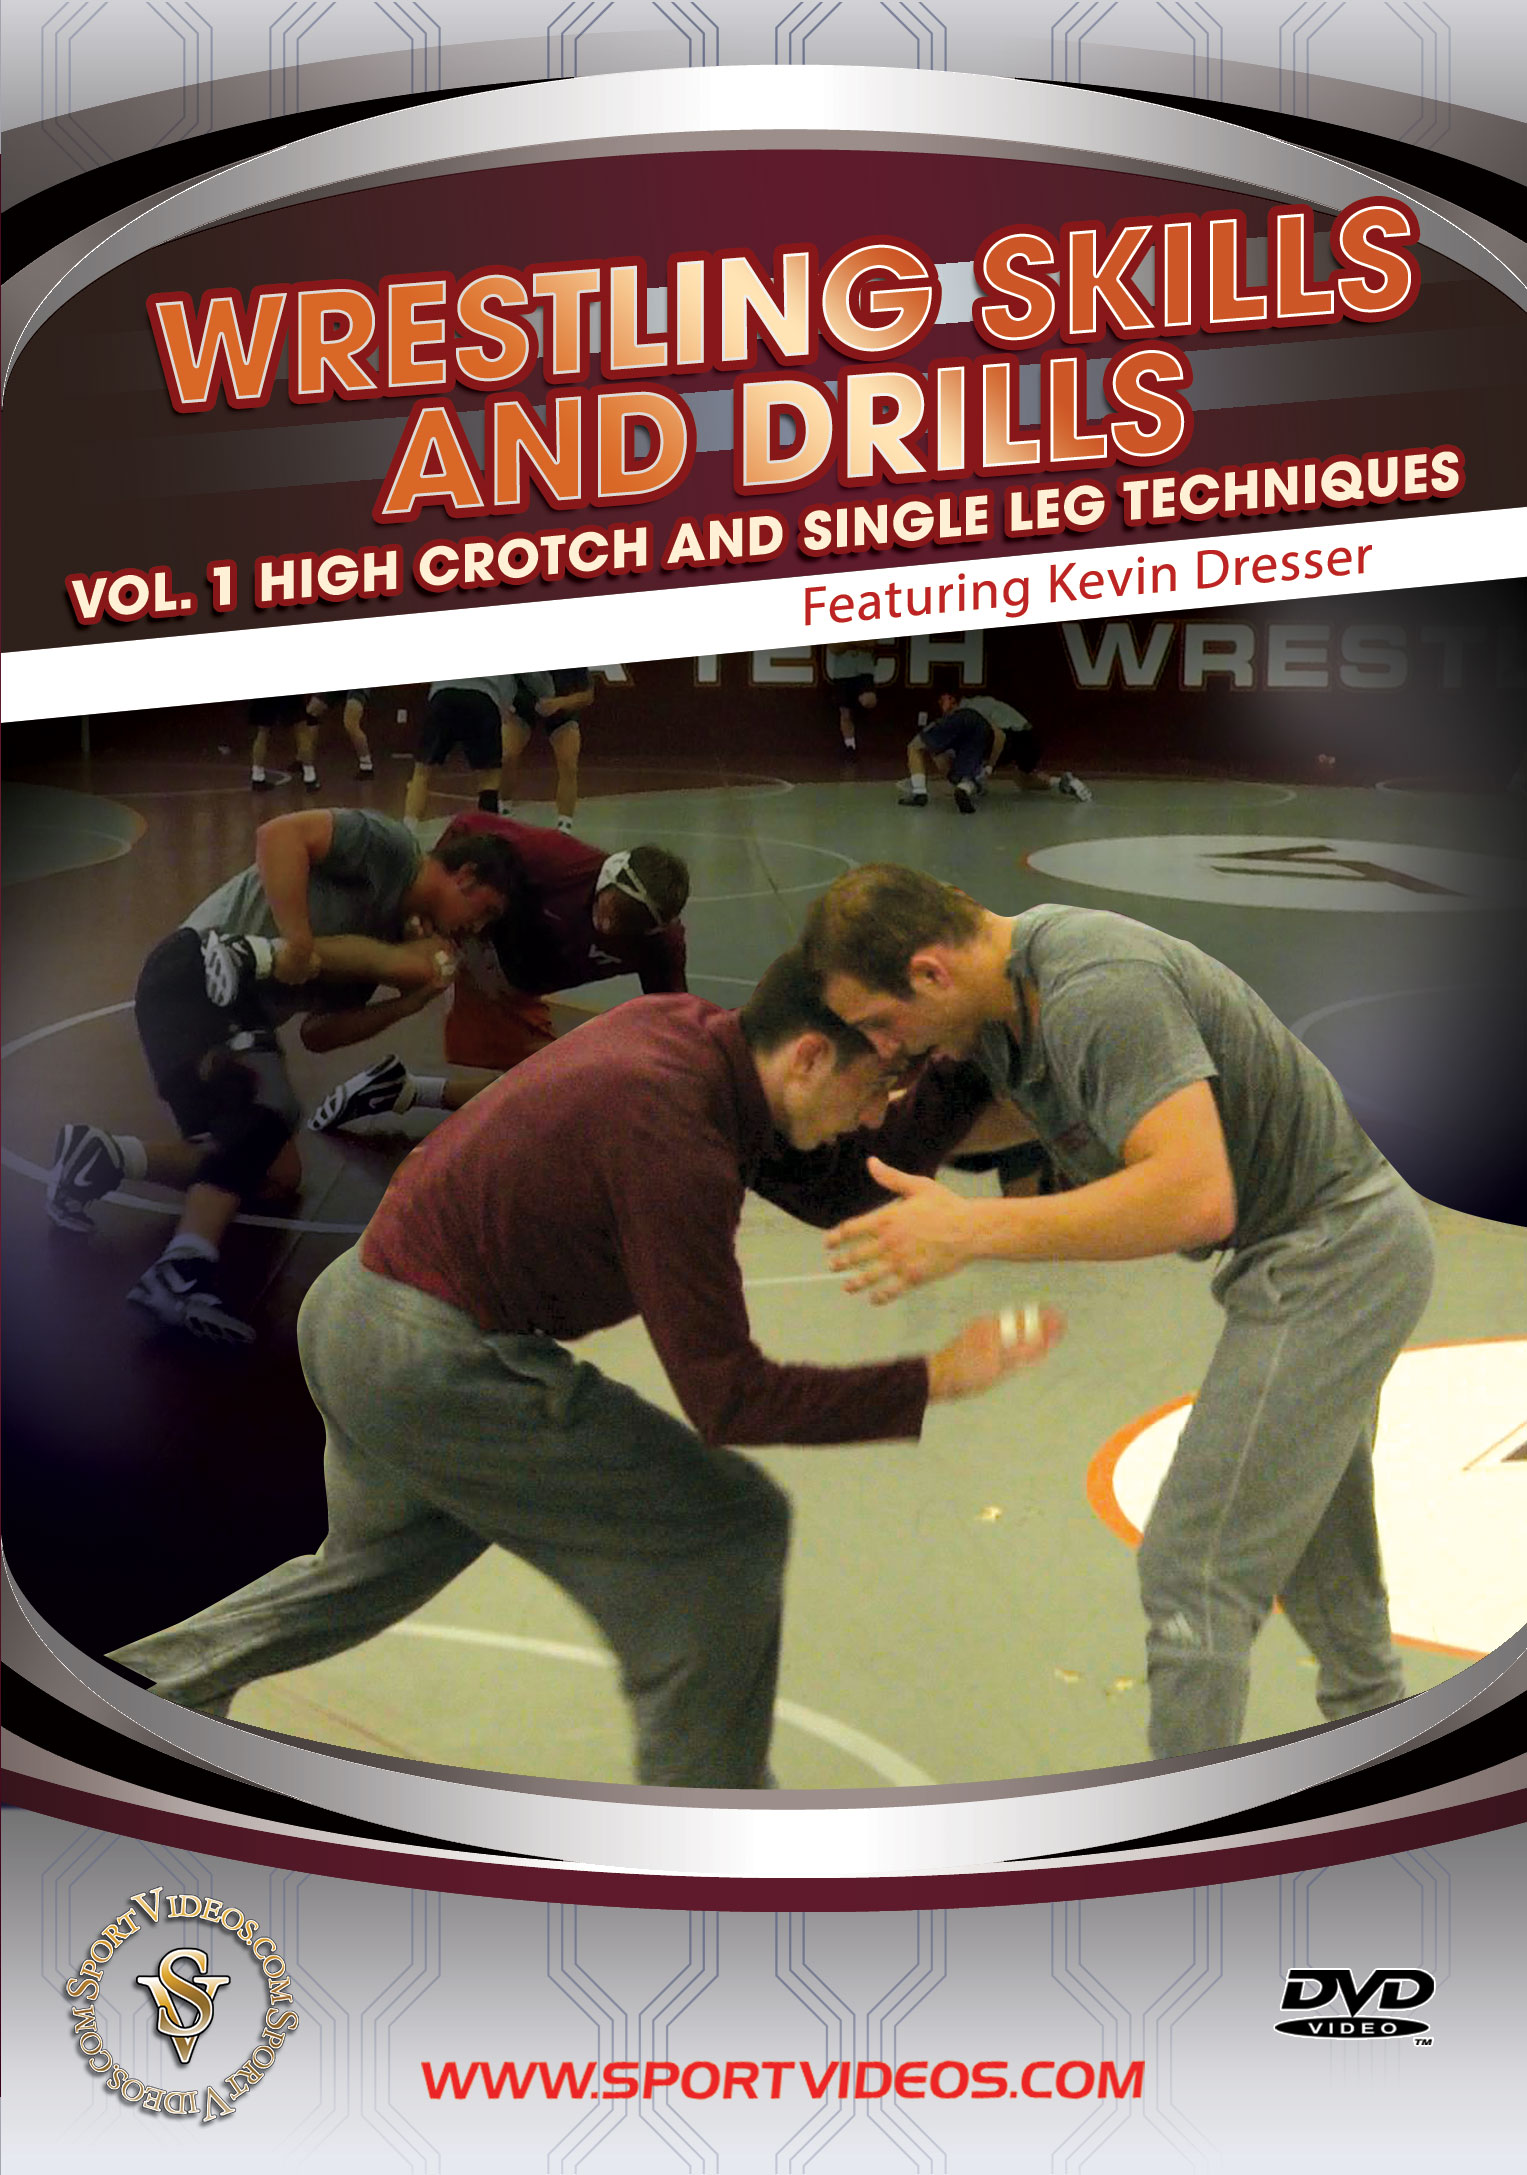 Wrestling Skills and Drills - Vol. 1 High Crotch and Single Leg Techniques Download